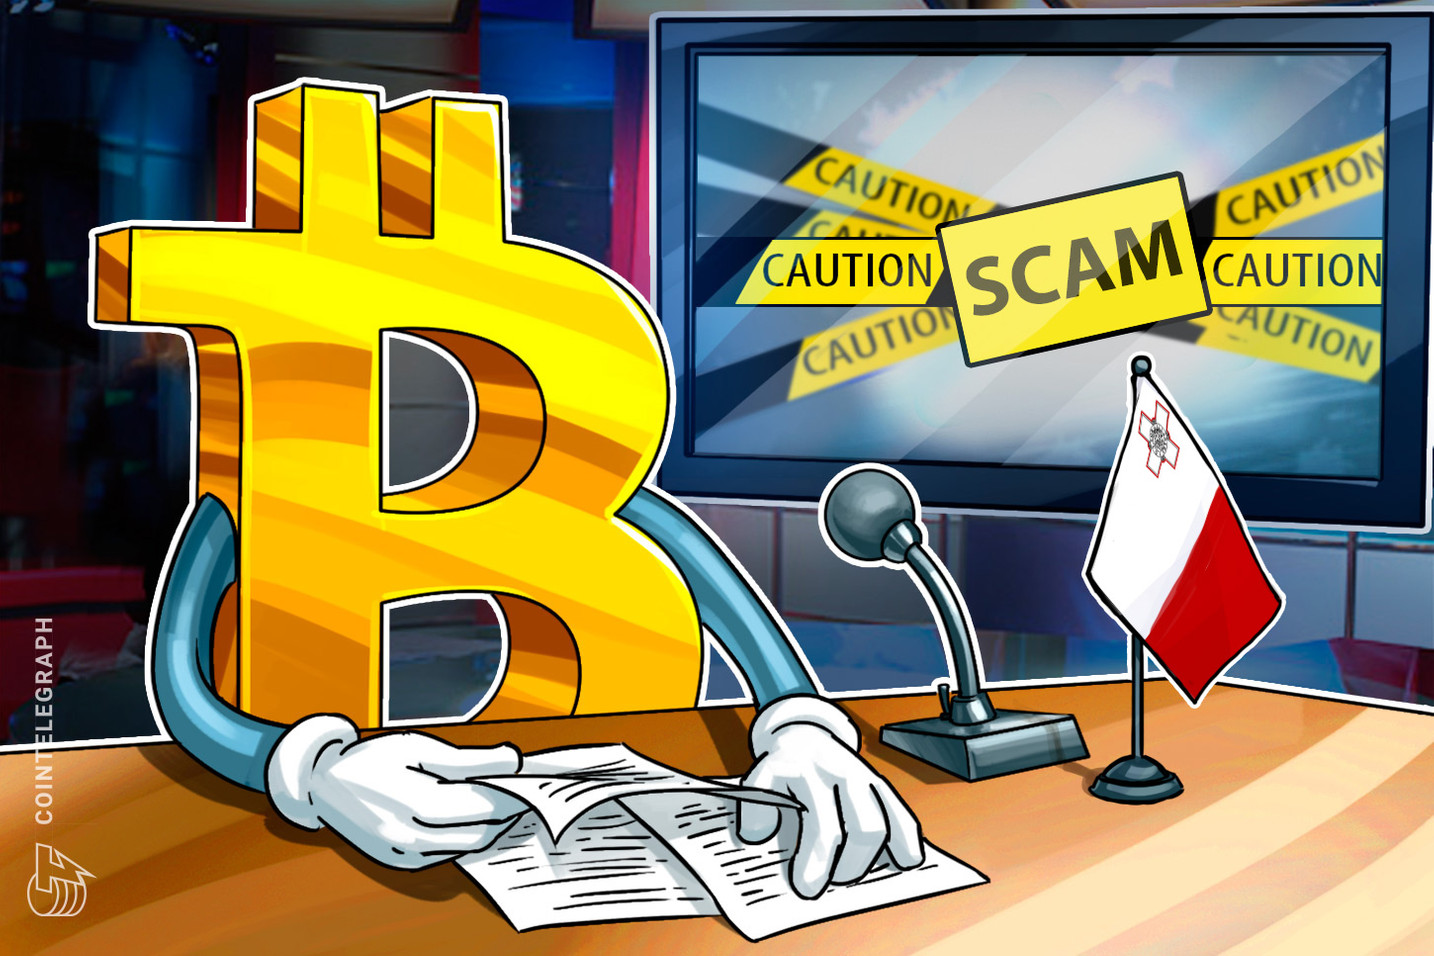 Malta's Financial Watchdog Warns Global Investors Against 'Bitcoin Revolution' Scam